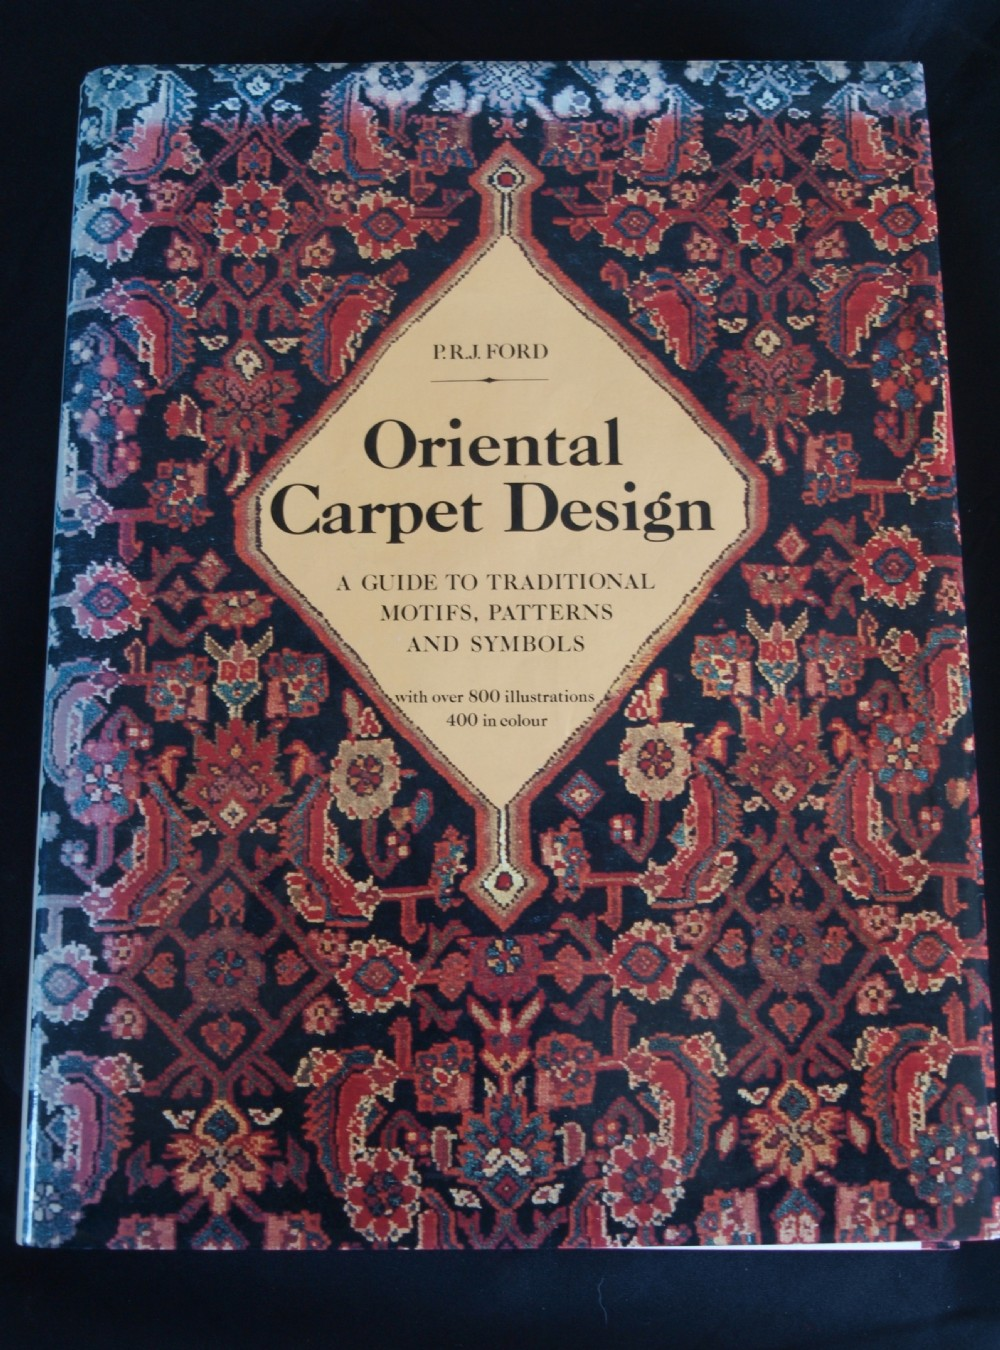 oriental carpet design a guide to traditional motifes patterns and symbols